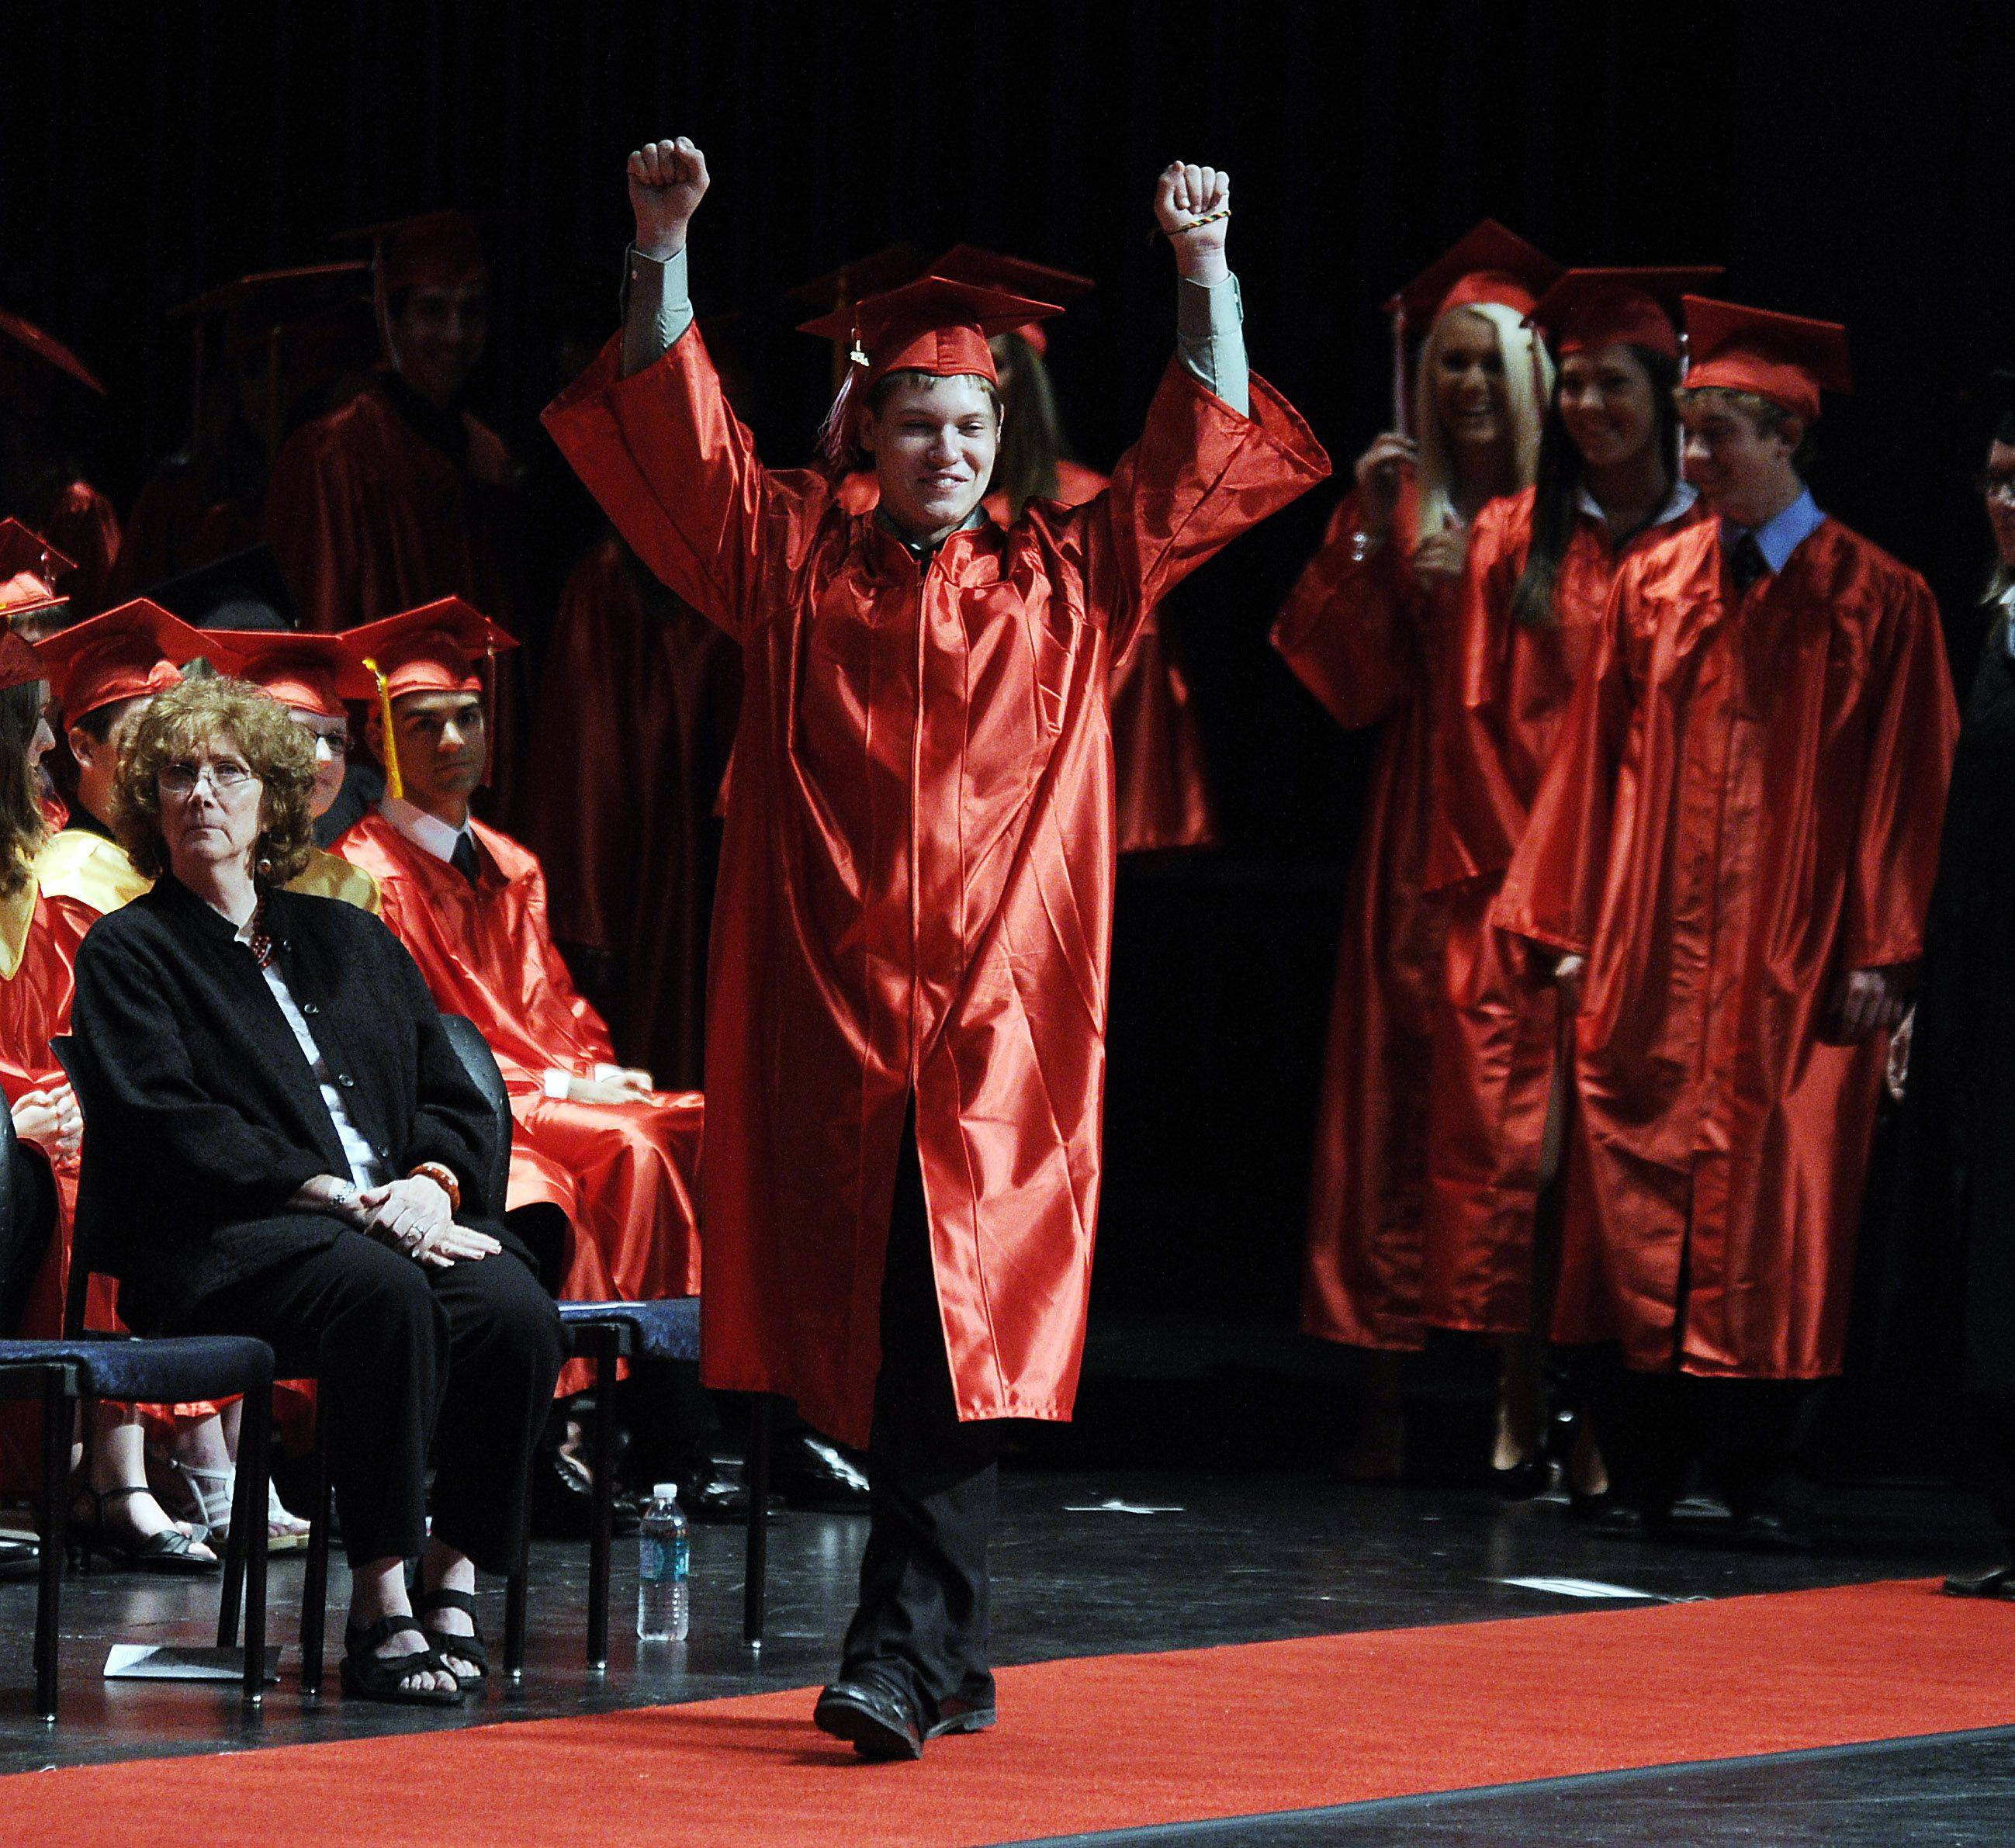 Maine South soon-to-be graduate Jacob Wiener gets a big round of applause as he marches to accept his diploma .